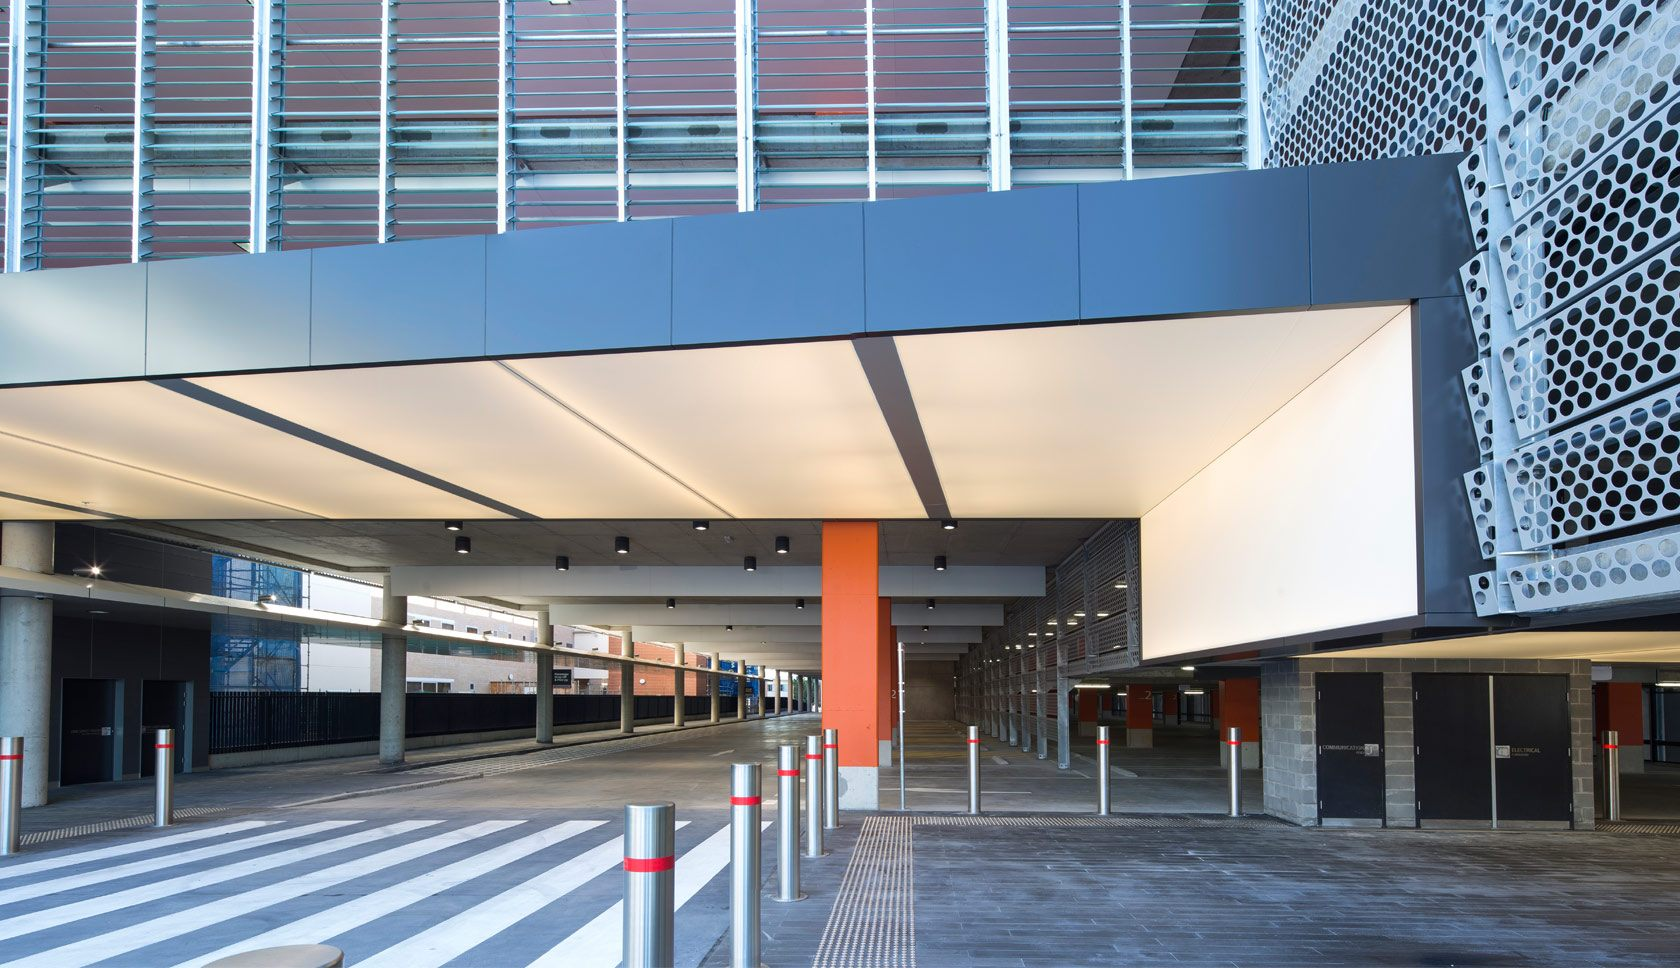 Sydney Adventist hospital multi-deck car park under cover view